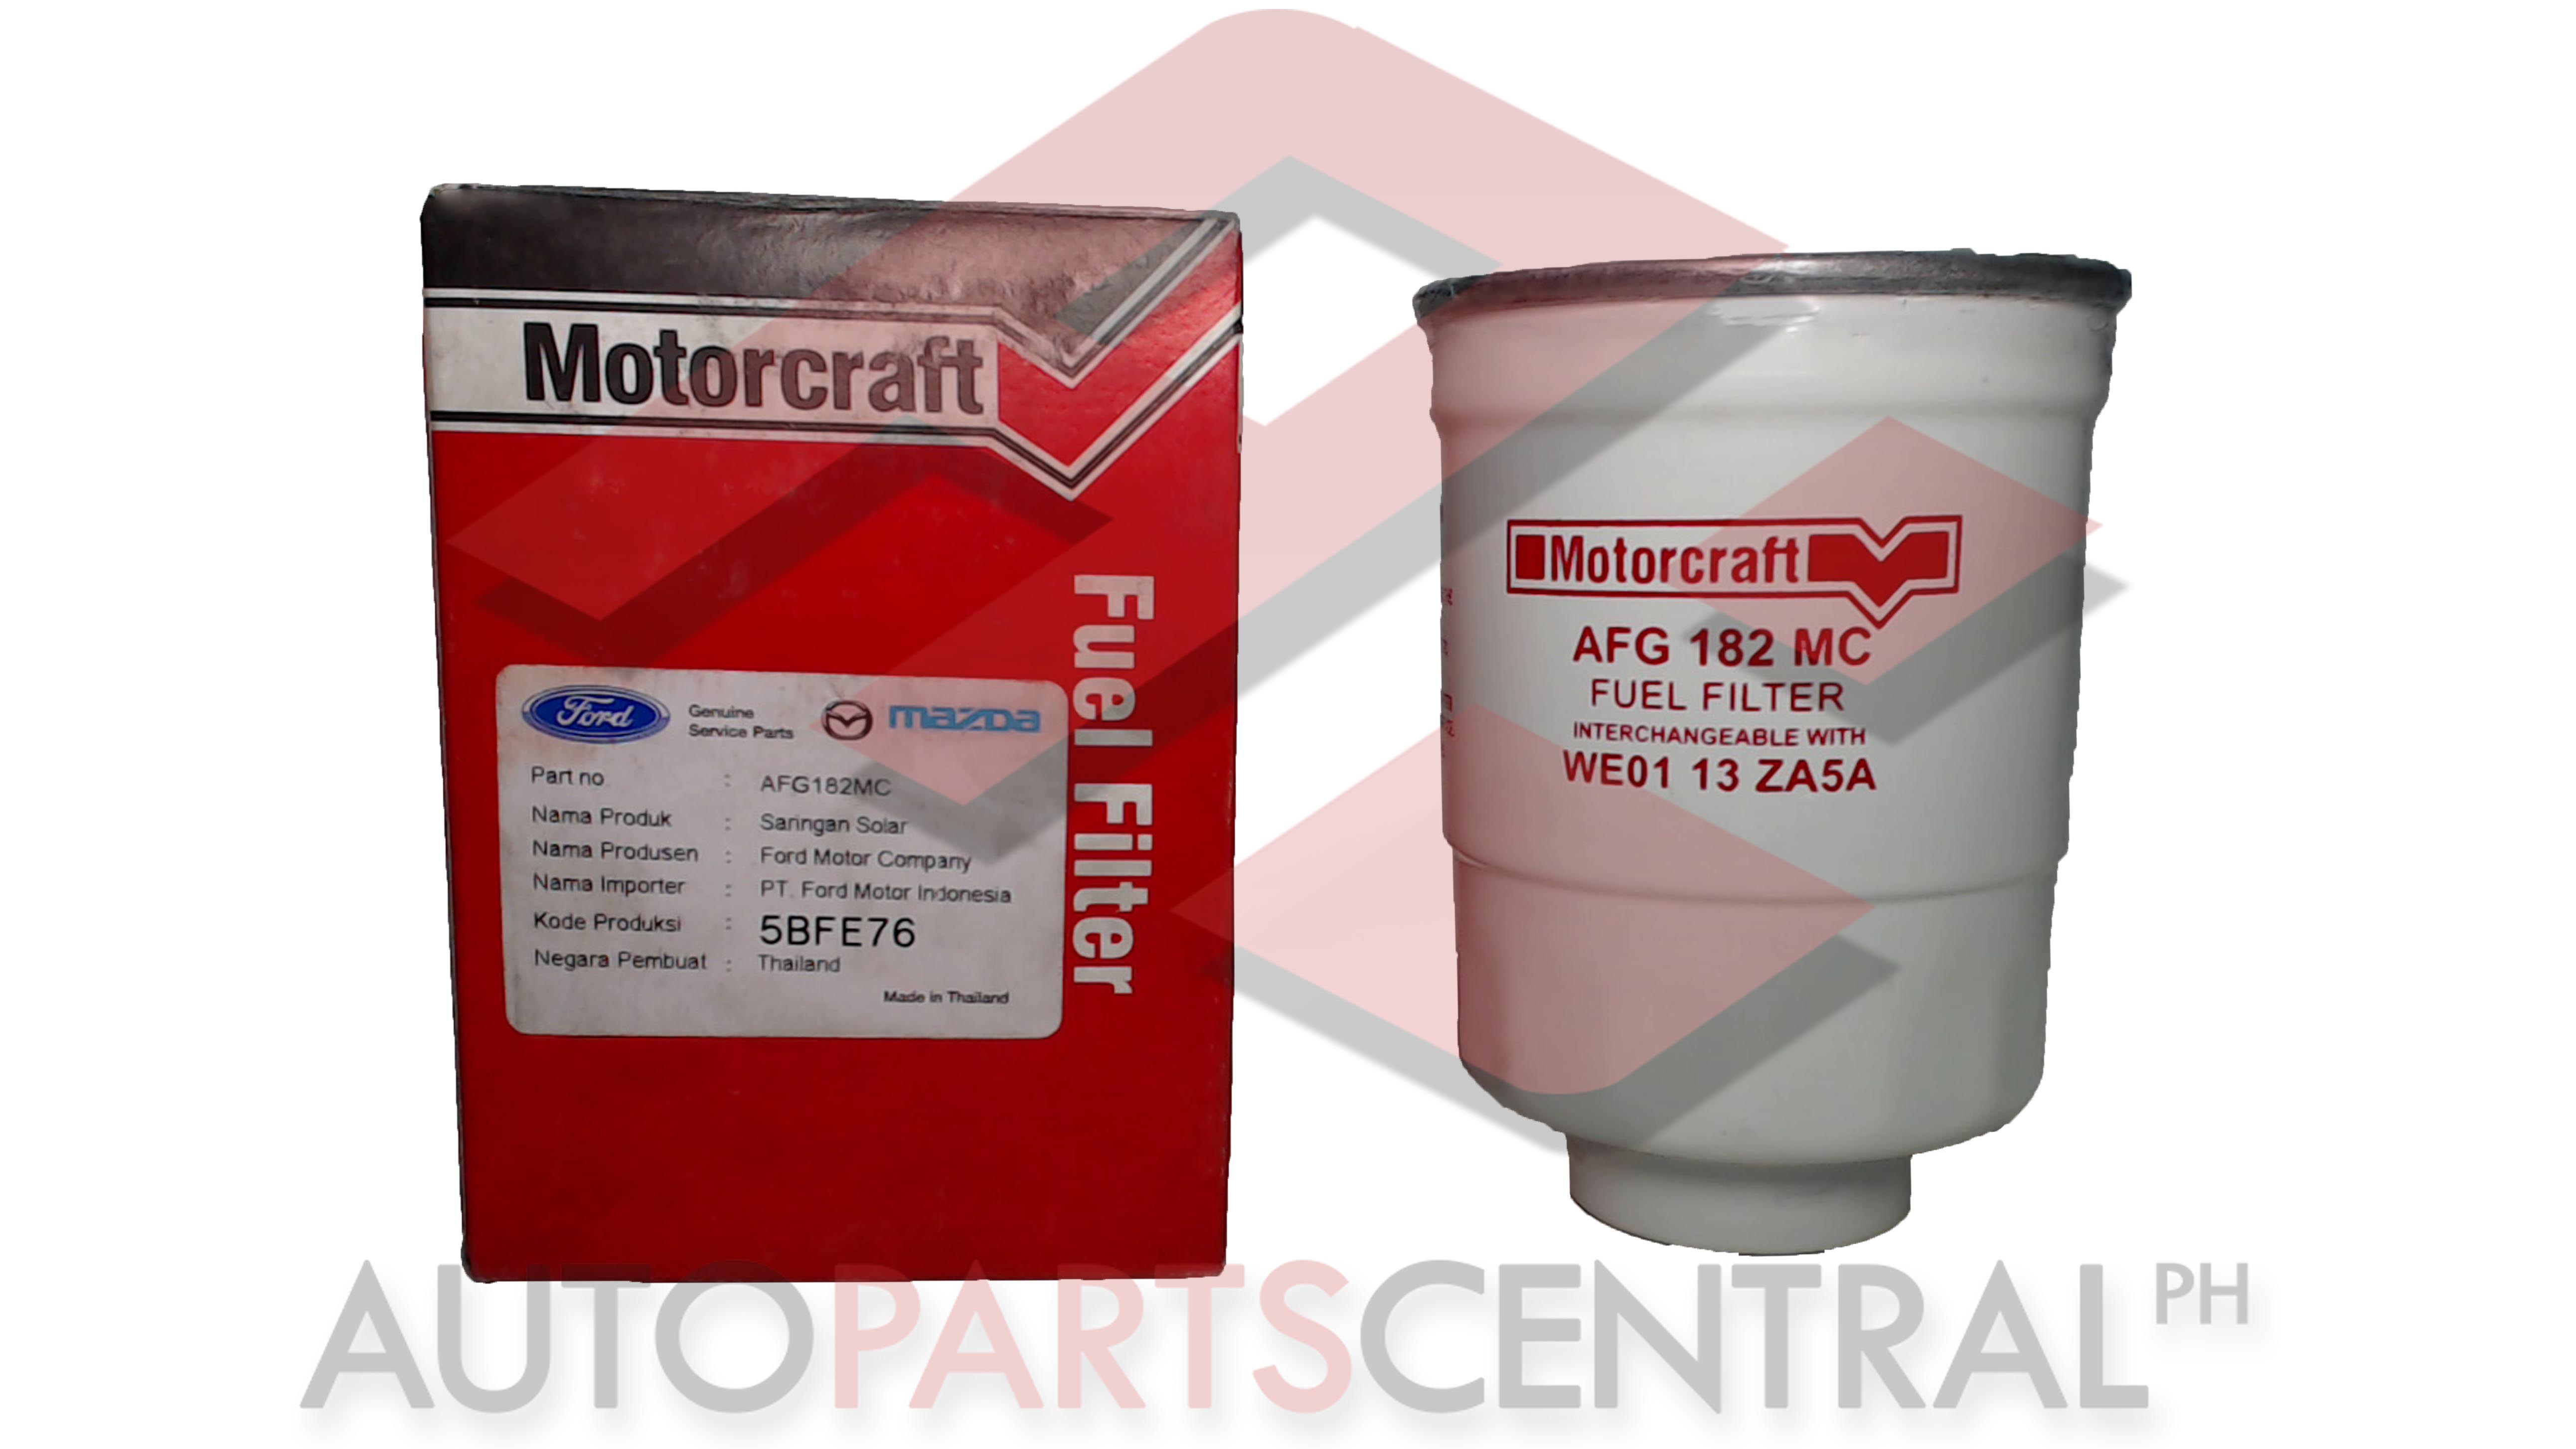 Fuel Filter Motor Craft Afg 182mc Ford Everest Autopartscentralph Mercedes Benz Filters